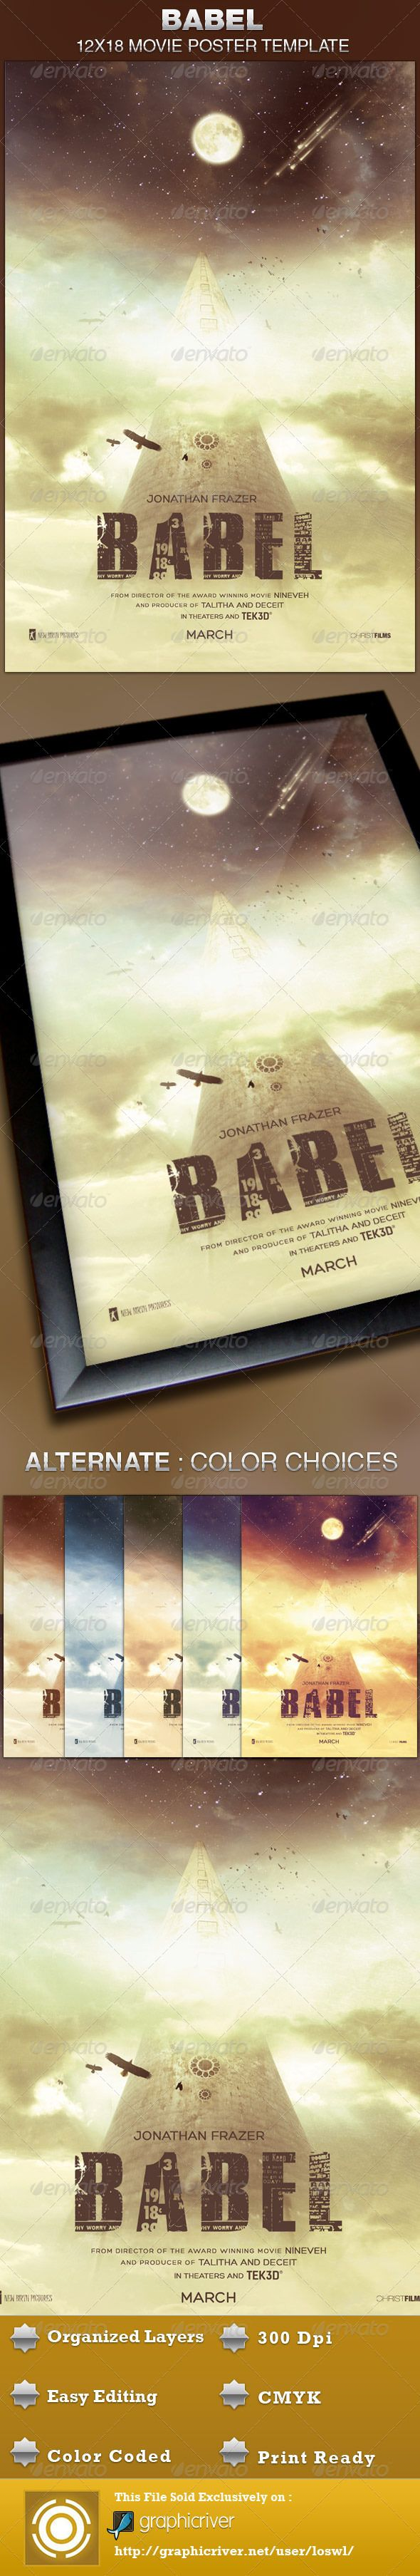 Babel Movie Poster Template — Photoshop PSD #creative designs #poster • Available here → https://graphicriver.net/item/babel-movie-poster-template/4551239?ref=pxcr